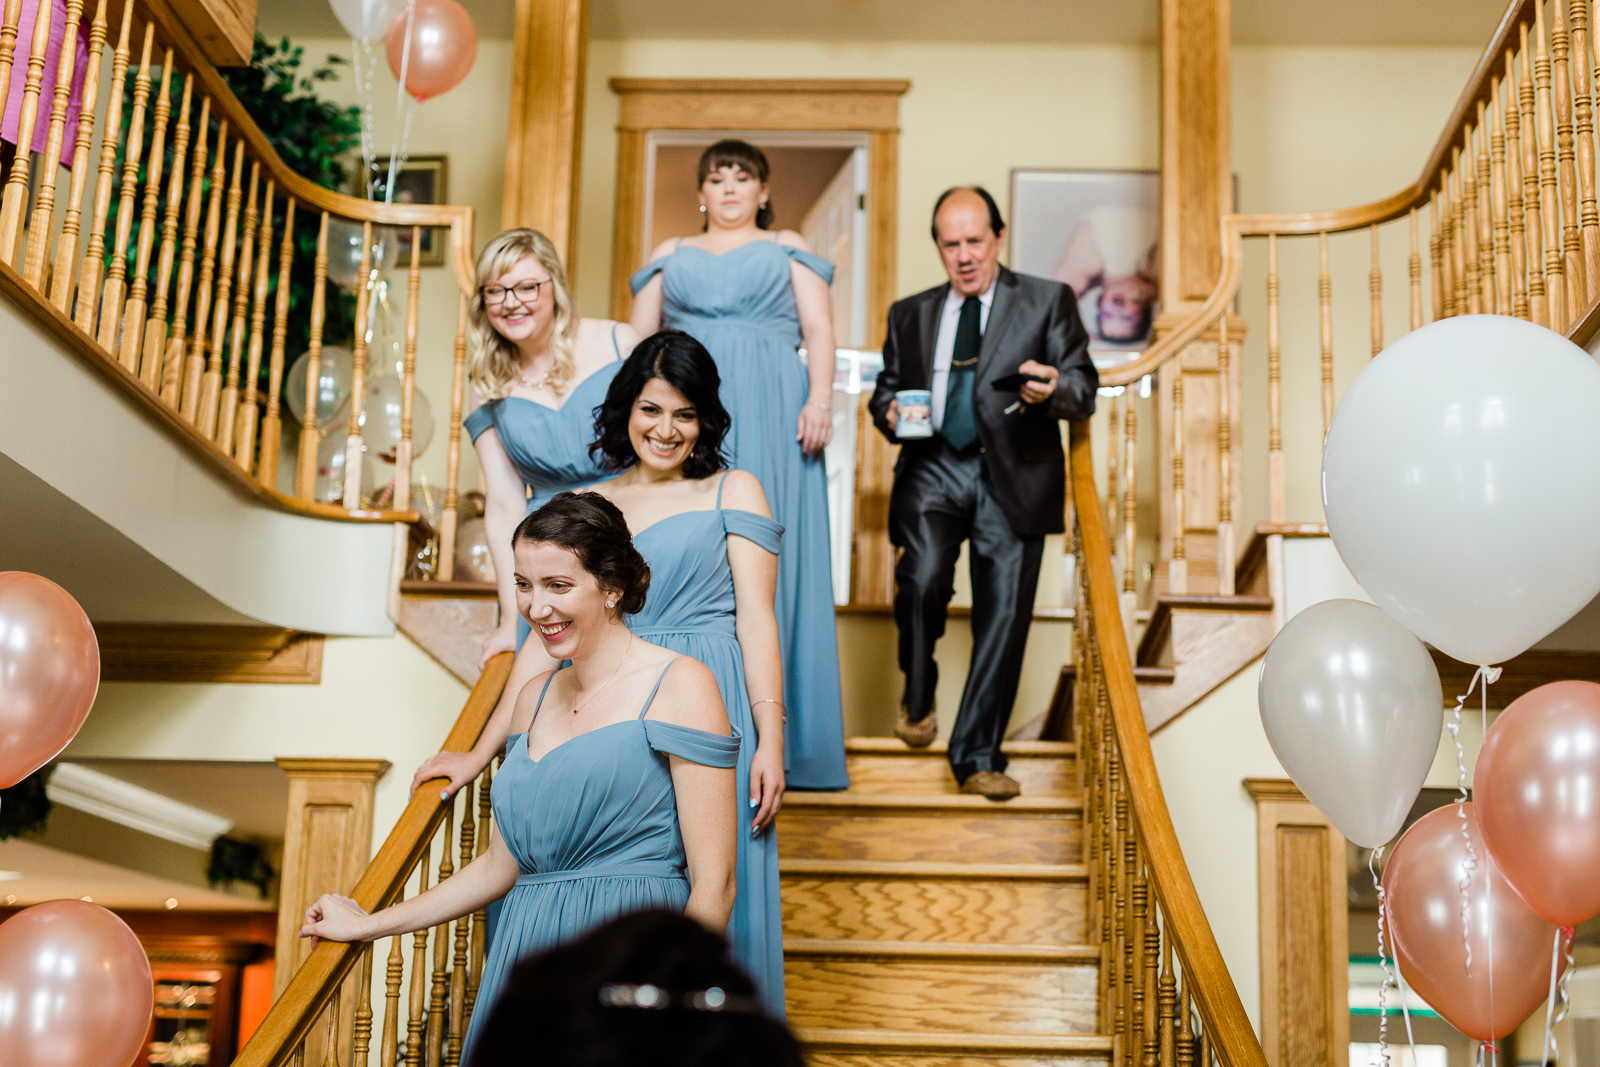 0015st-johns-wedding-photographer-caitlin-adam-yellowbelly.jpg